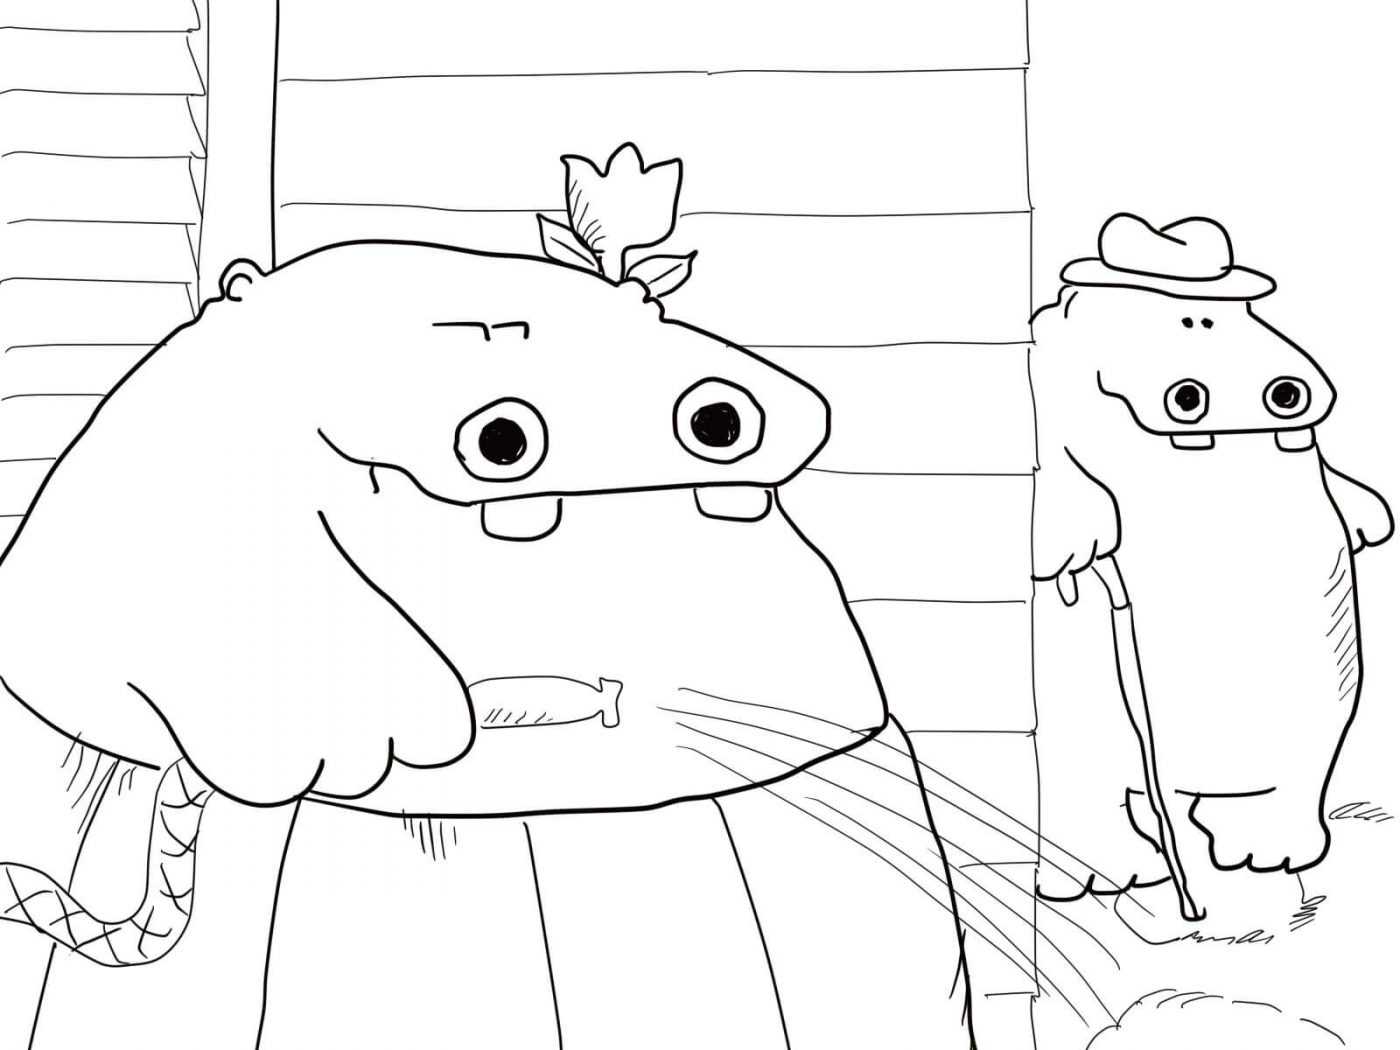 1400x1050 Free Printable Hippo Coloring Pages For Toddler Animals Cute Pygmy